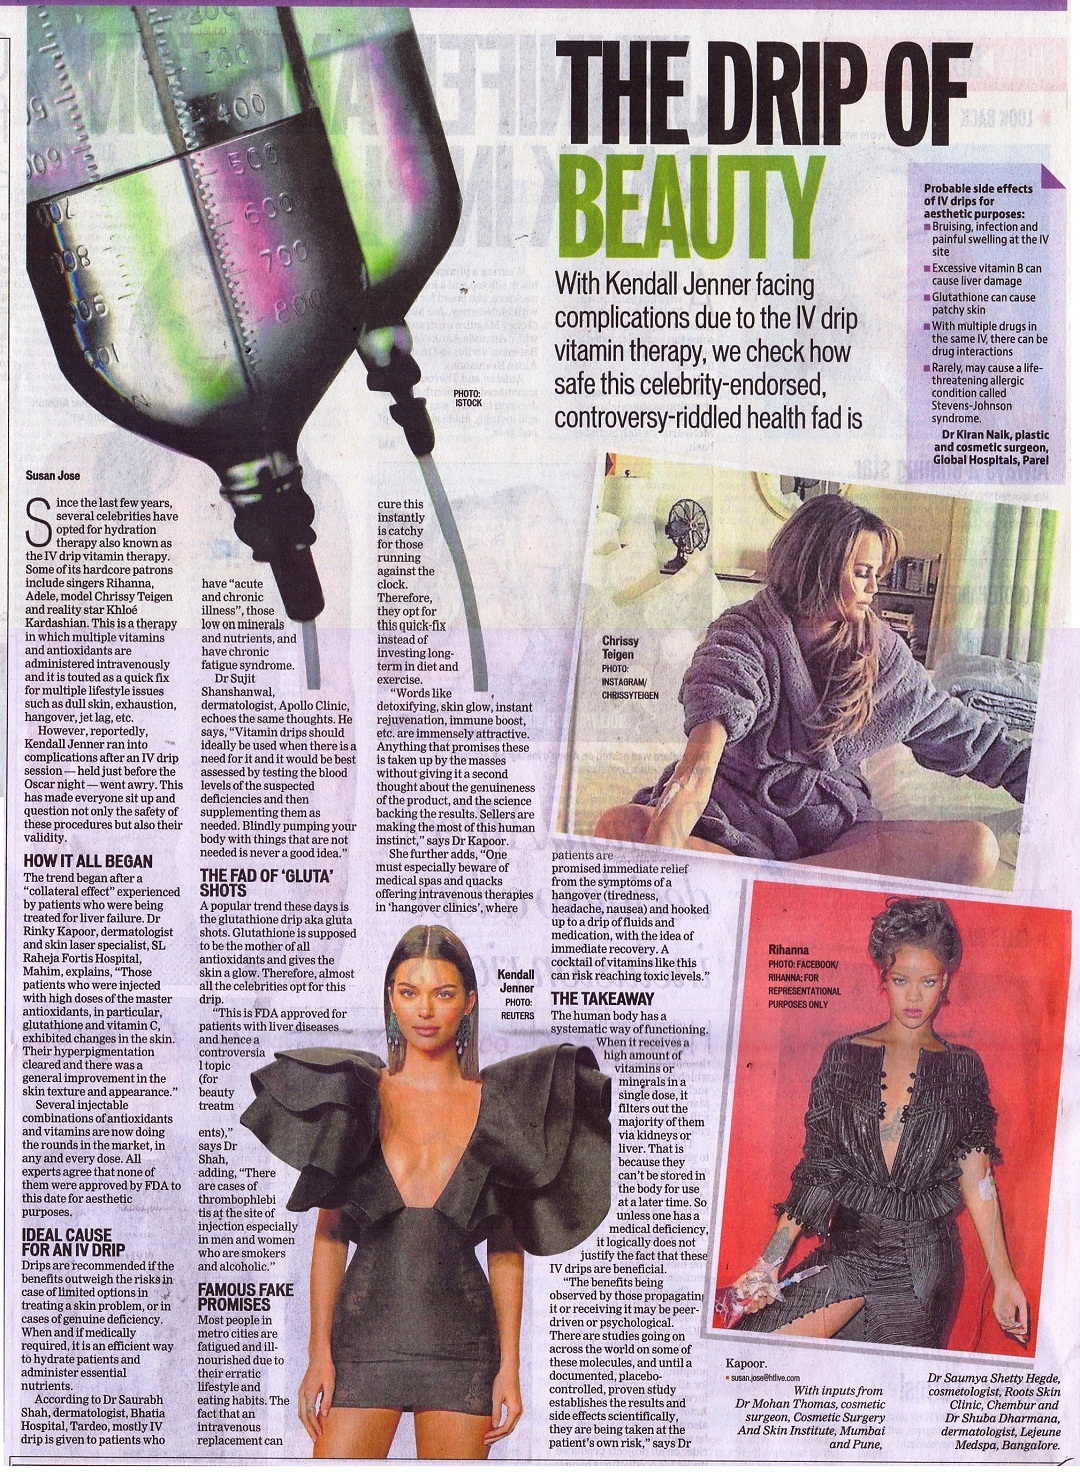 News - The Drip of beauty